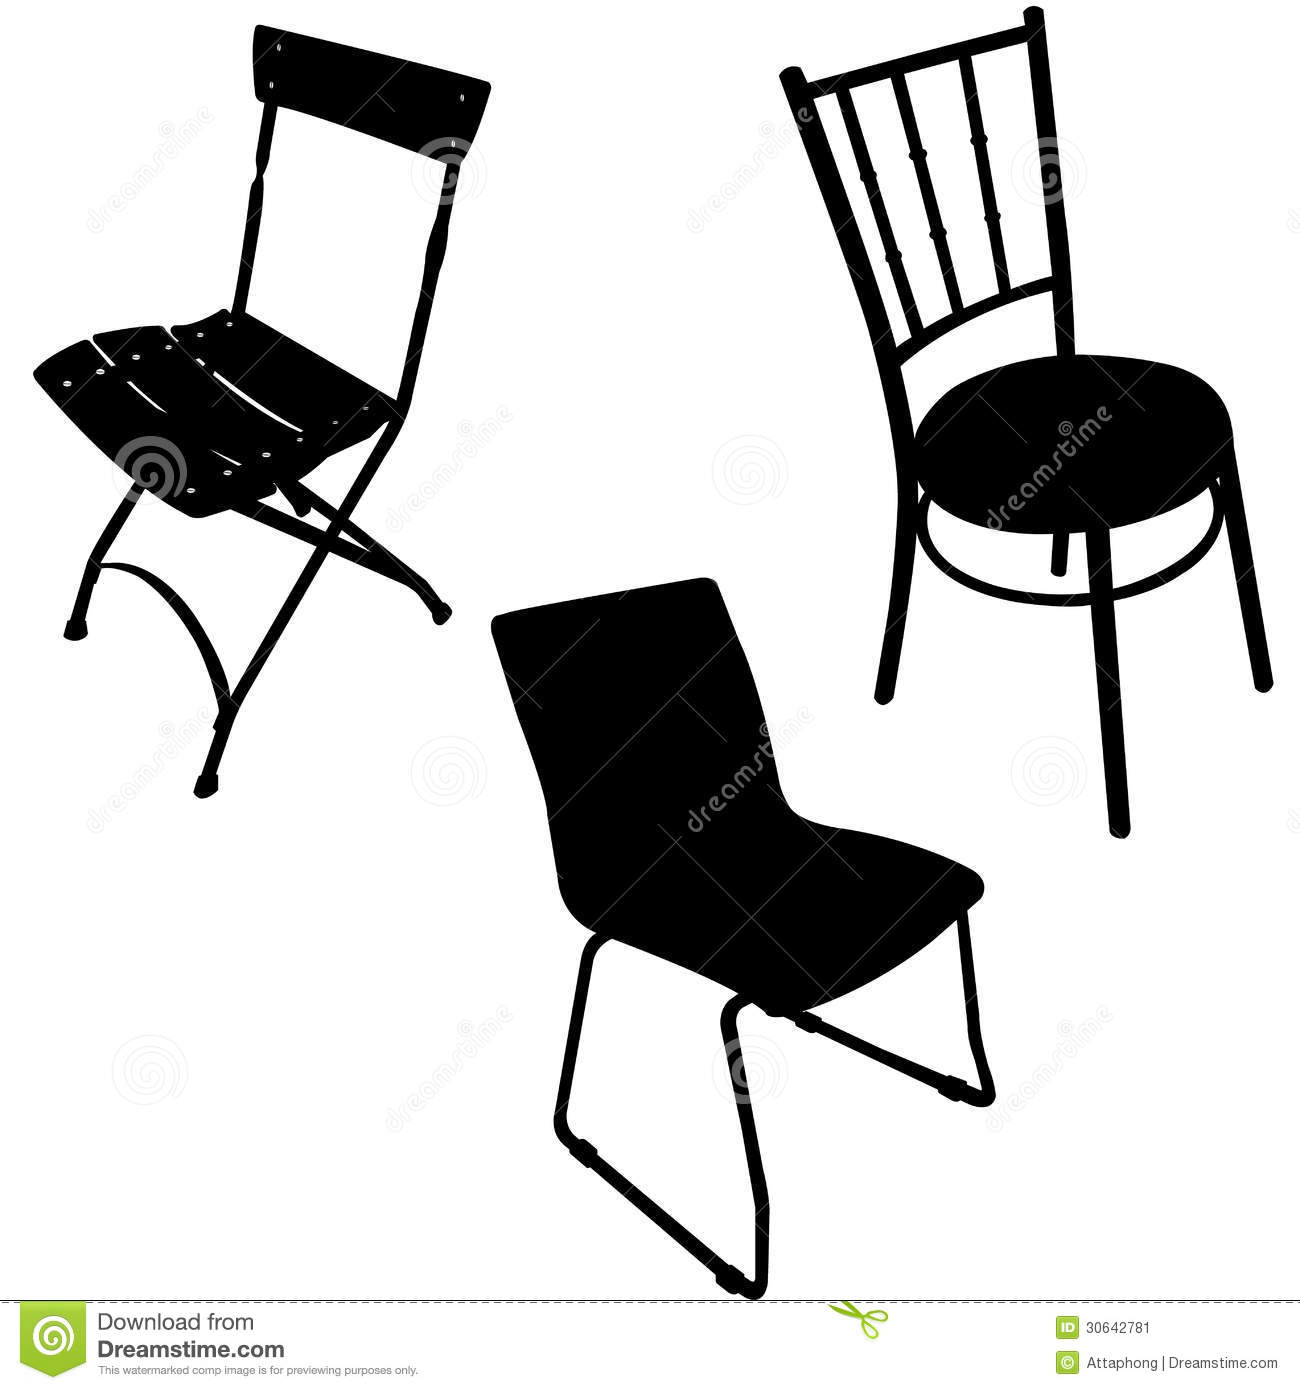 Chair Vector - Silhouette Stock Image - Image: 30642781